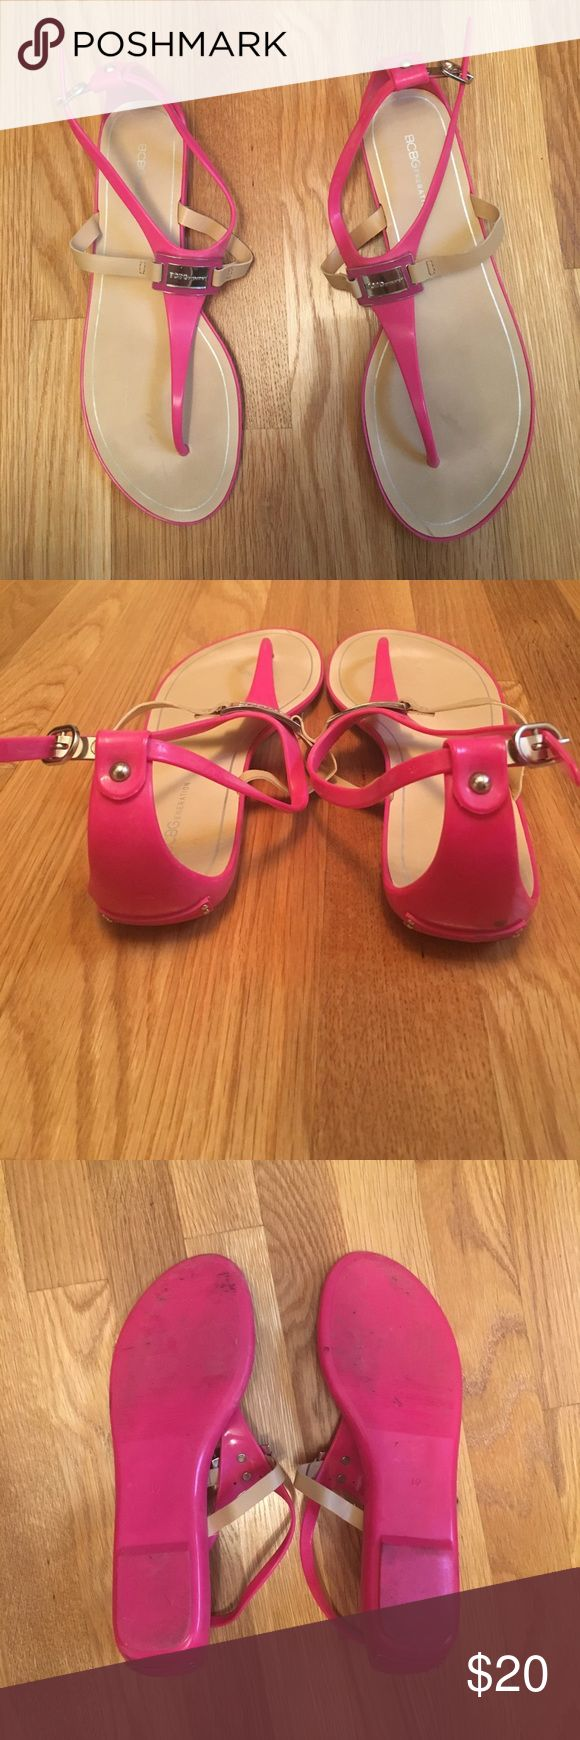 Women's jelly sandals size 10 - Bcbgeneration Pink Jelly Sandals Size 10 Gently Used Worn Maybe Twice Bcbgeneration Sandals